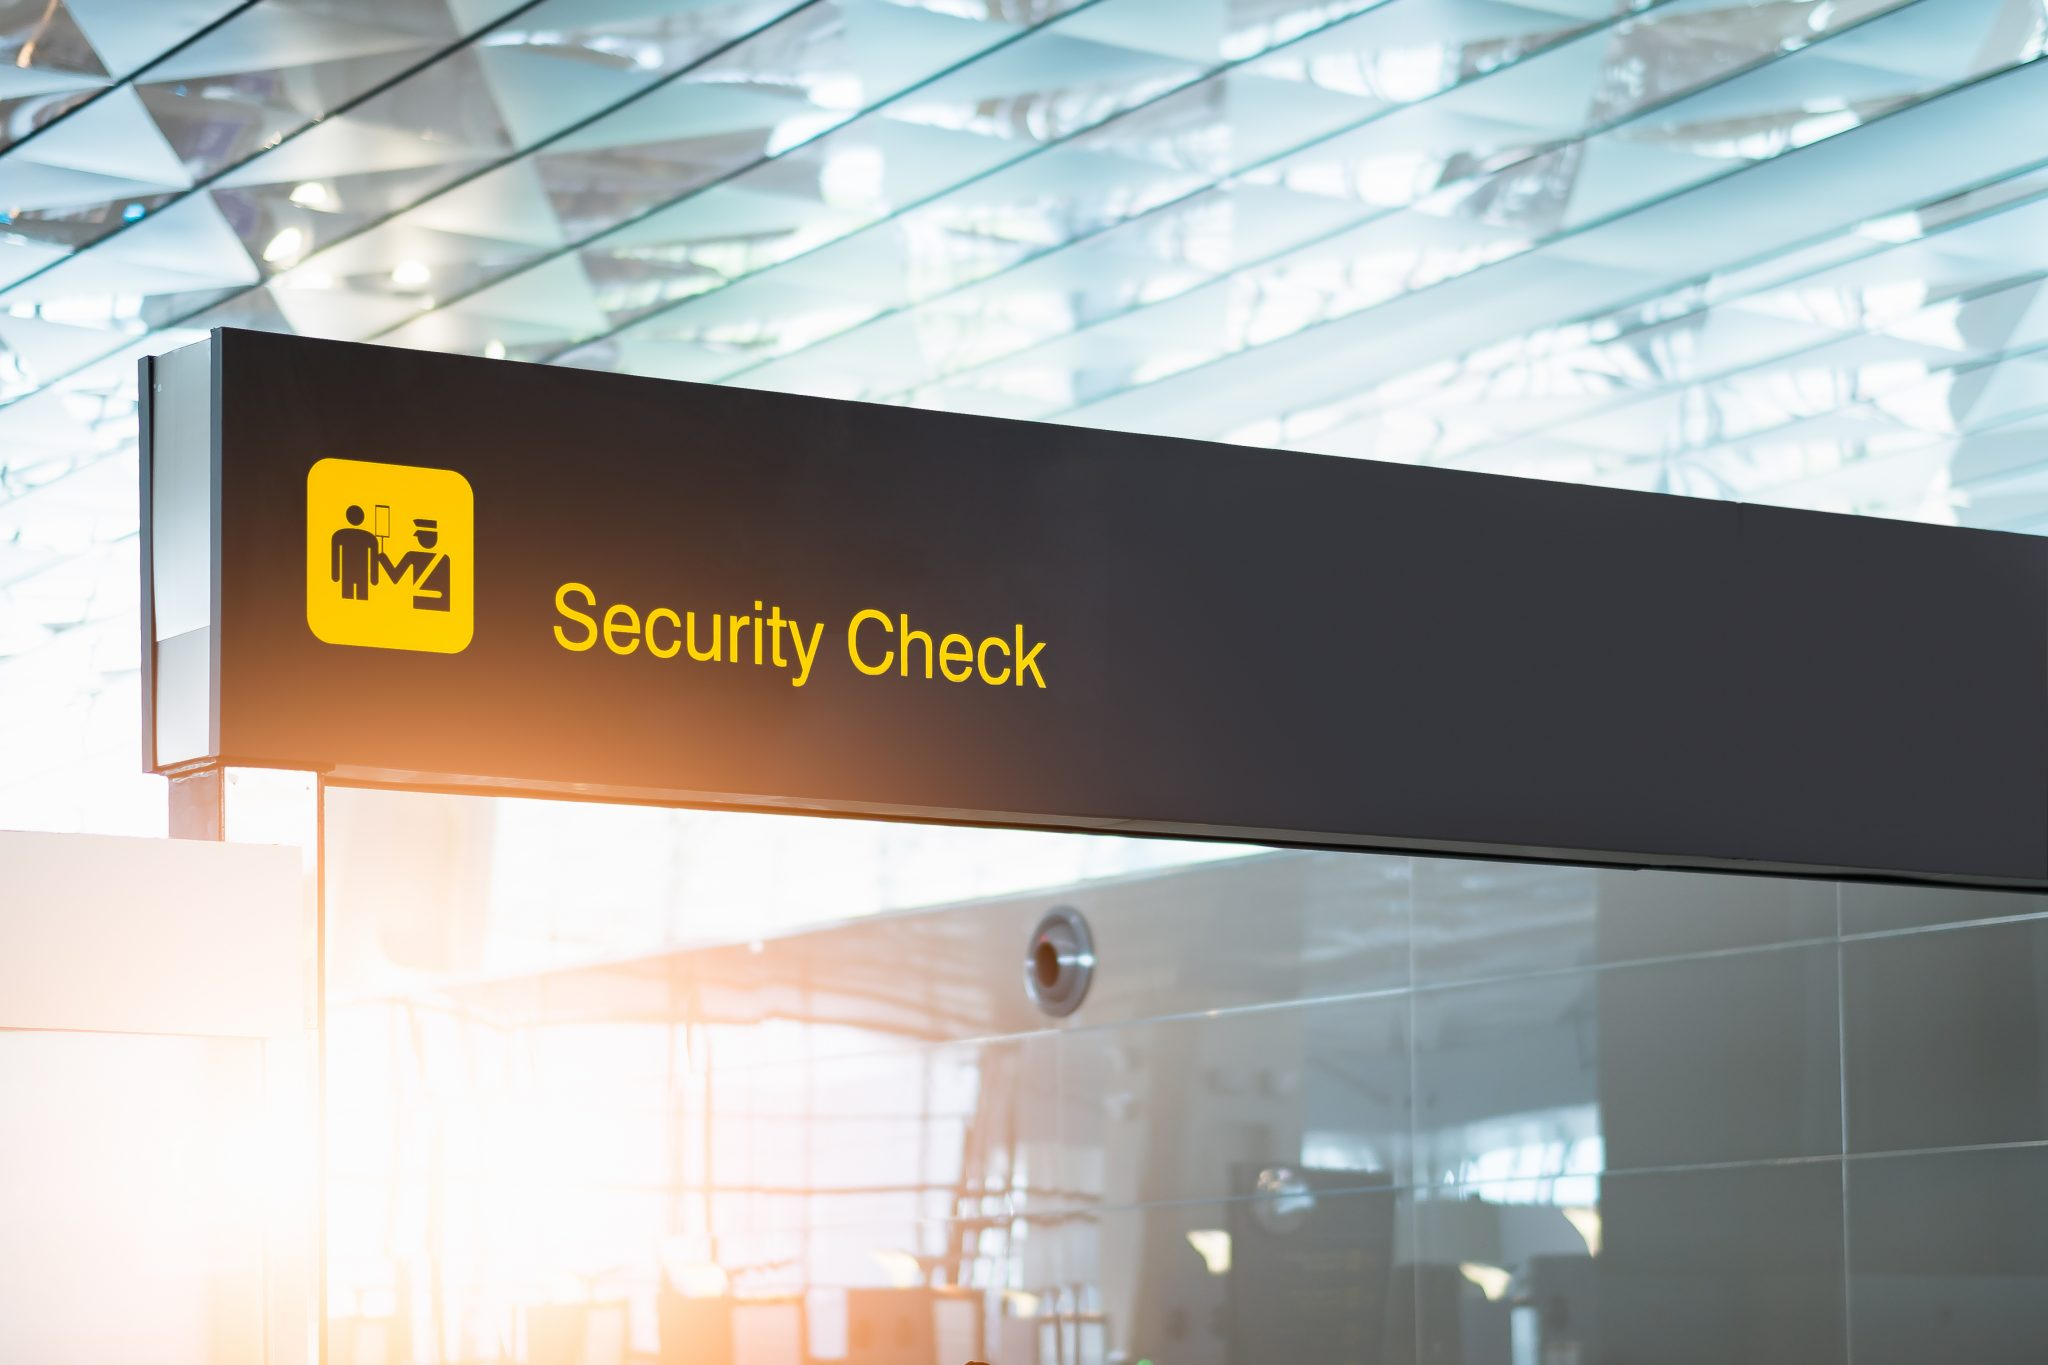 Security Checkpoint at an airport